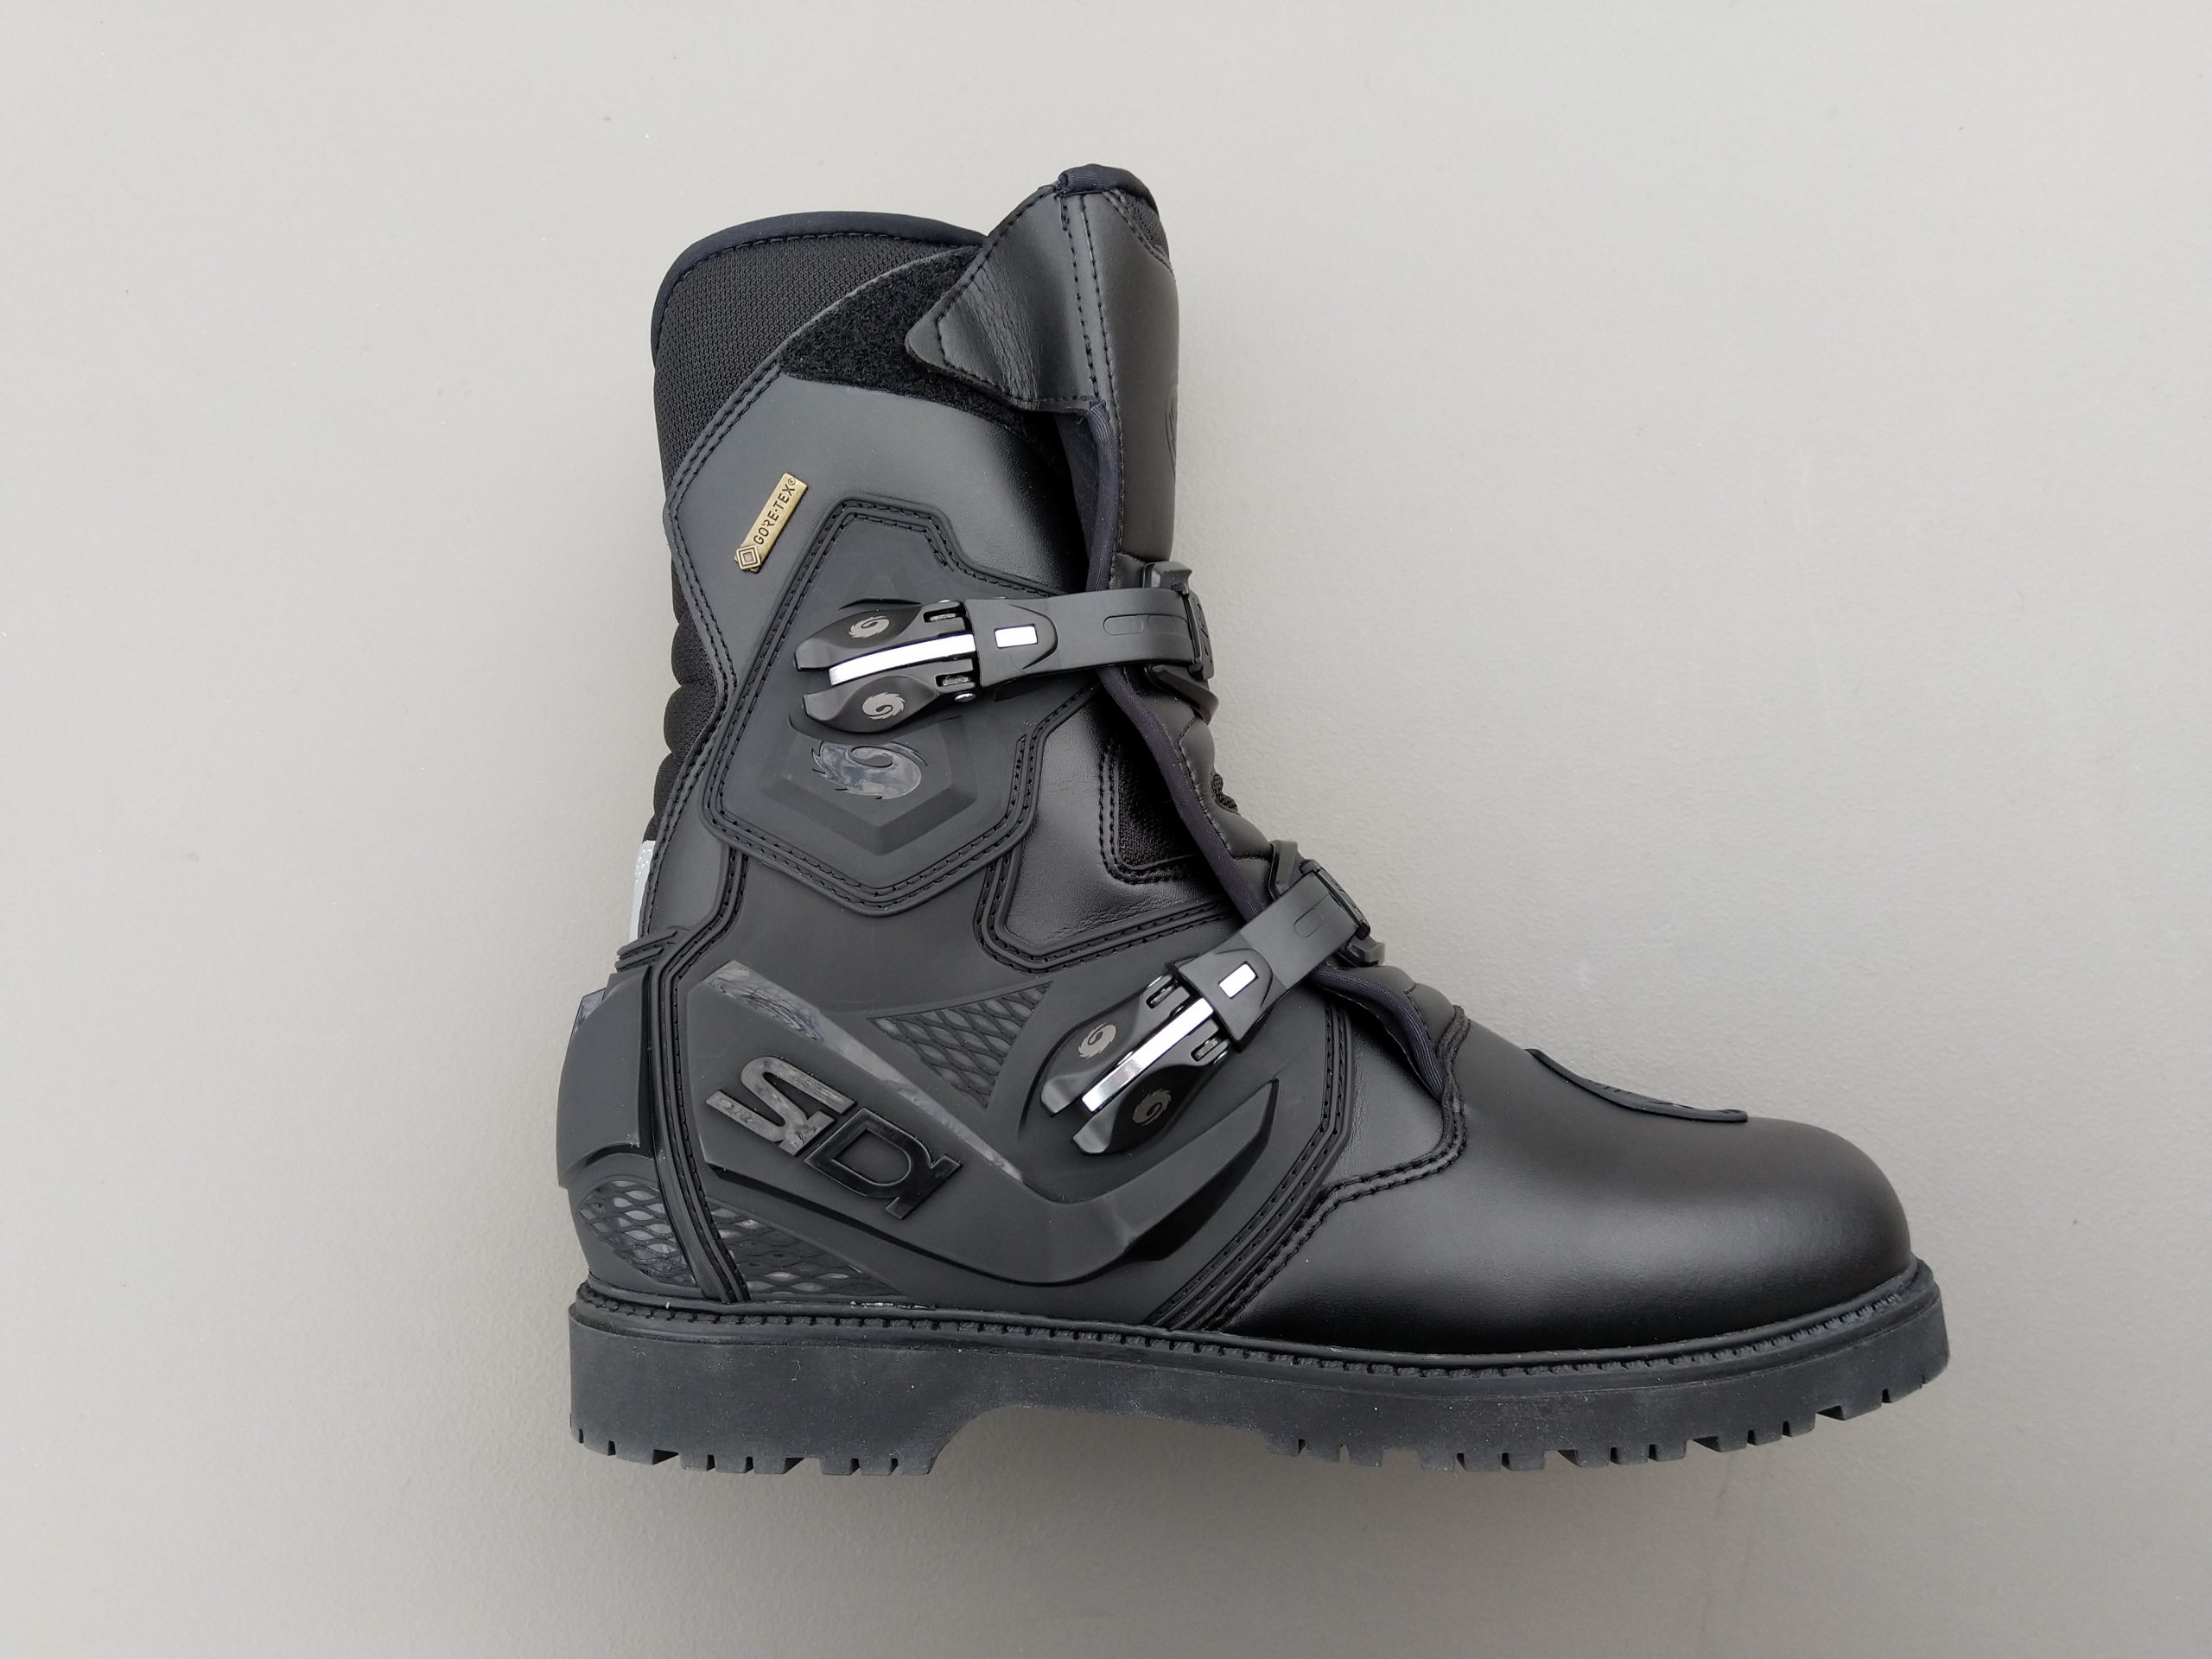 Medicina insondable carne de vaca  puma motorcycle boots canada Cheaper Than Retail Price> Buy Clothing,  Accessories and lifestyle products for women & men -